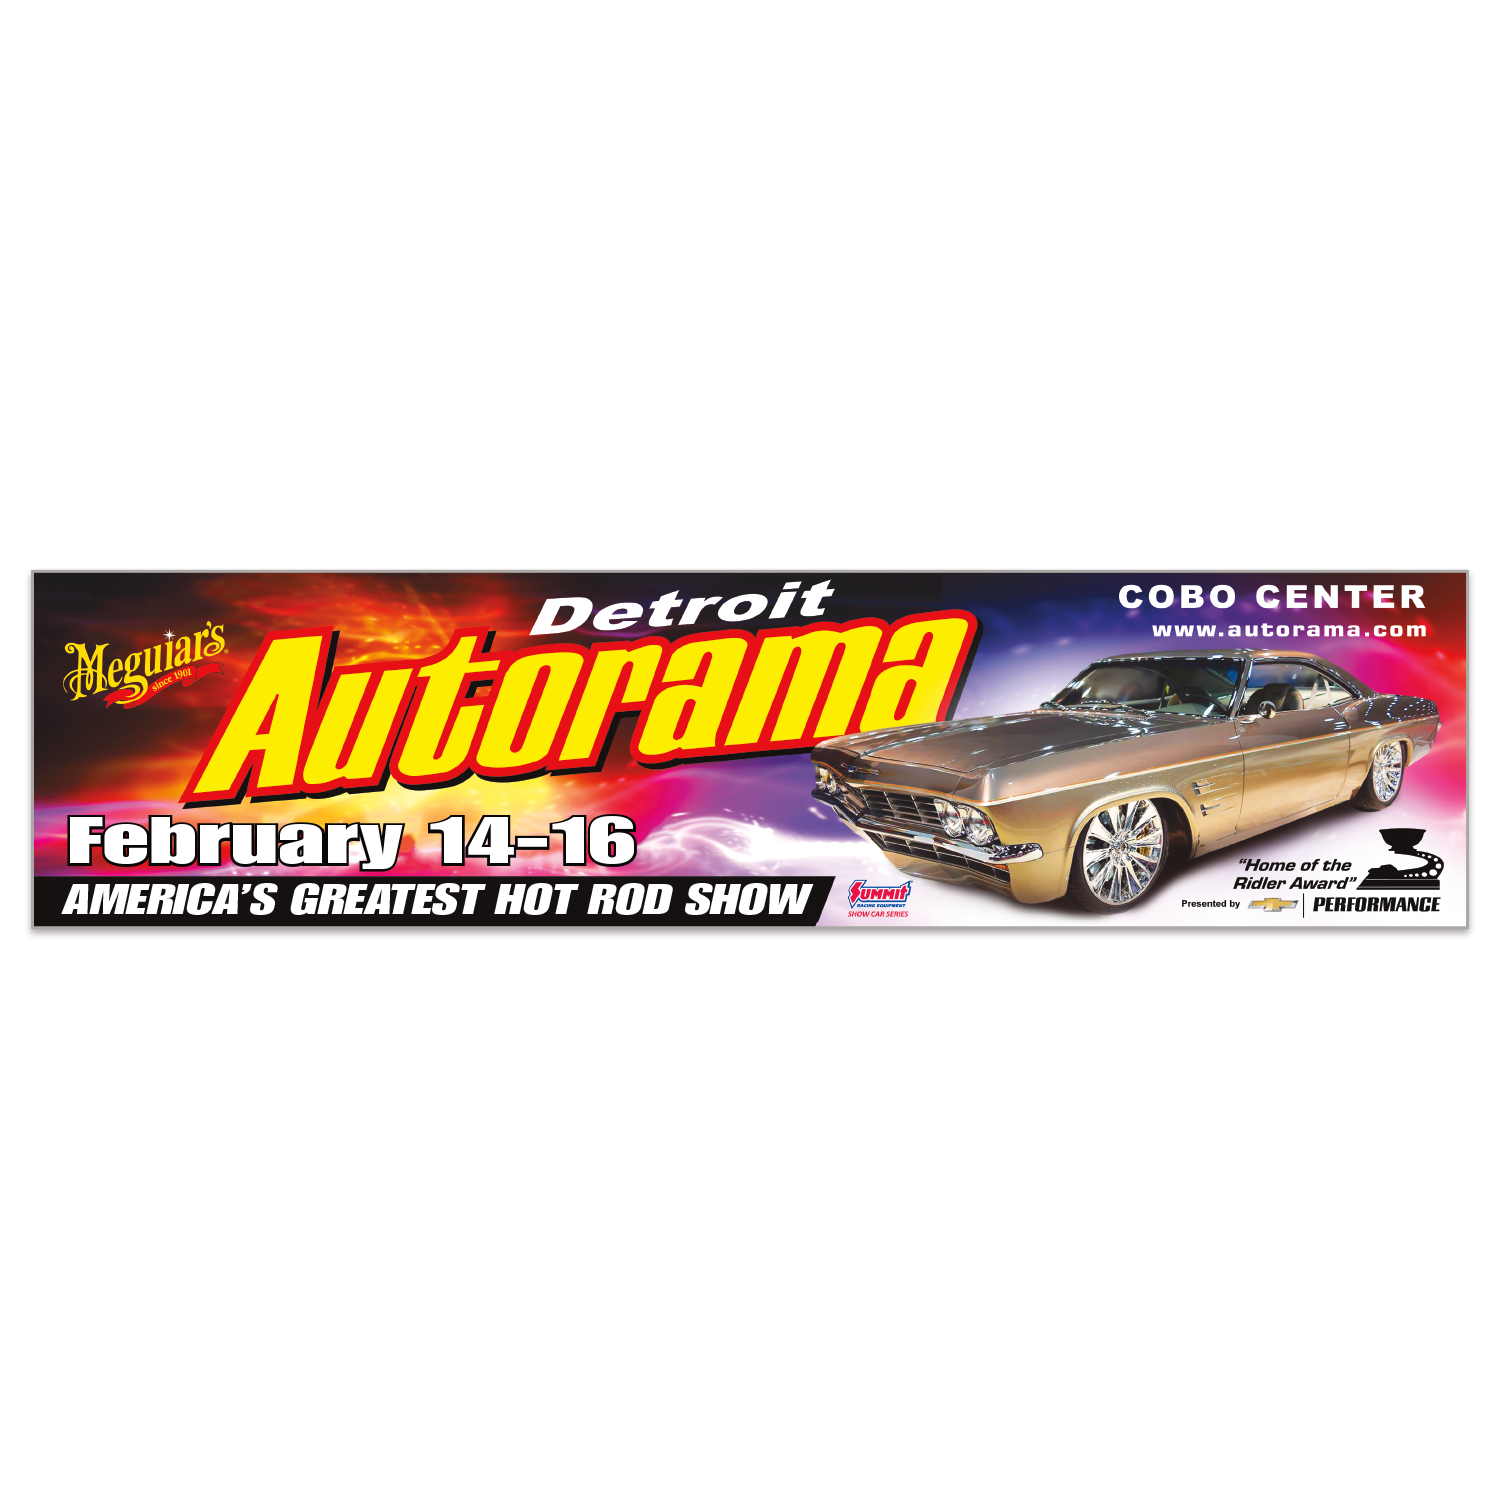 https://www.sswprinting.com/images/products_gallery_images/43534_Autorama_hi-res.png